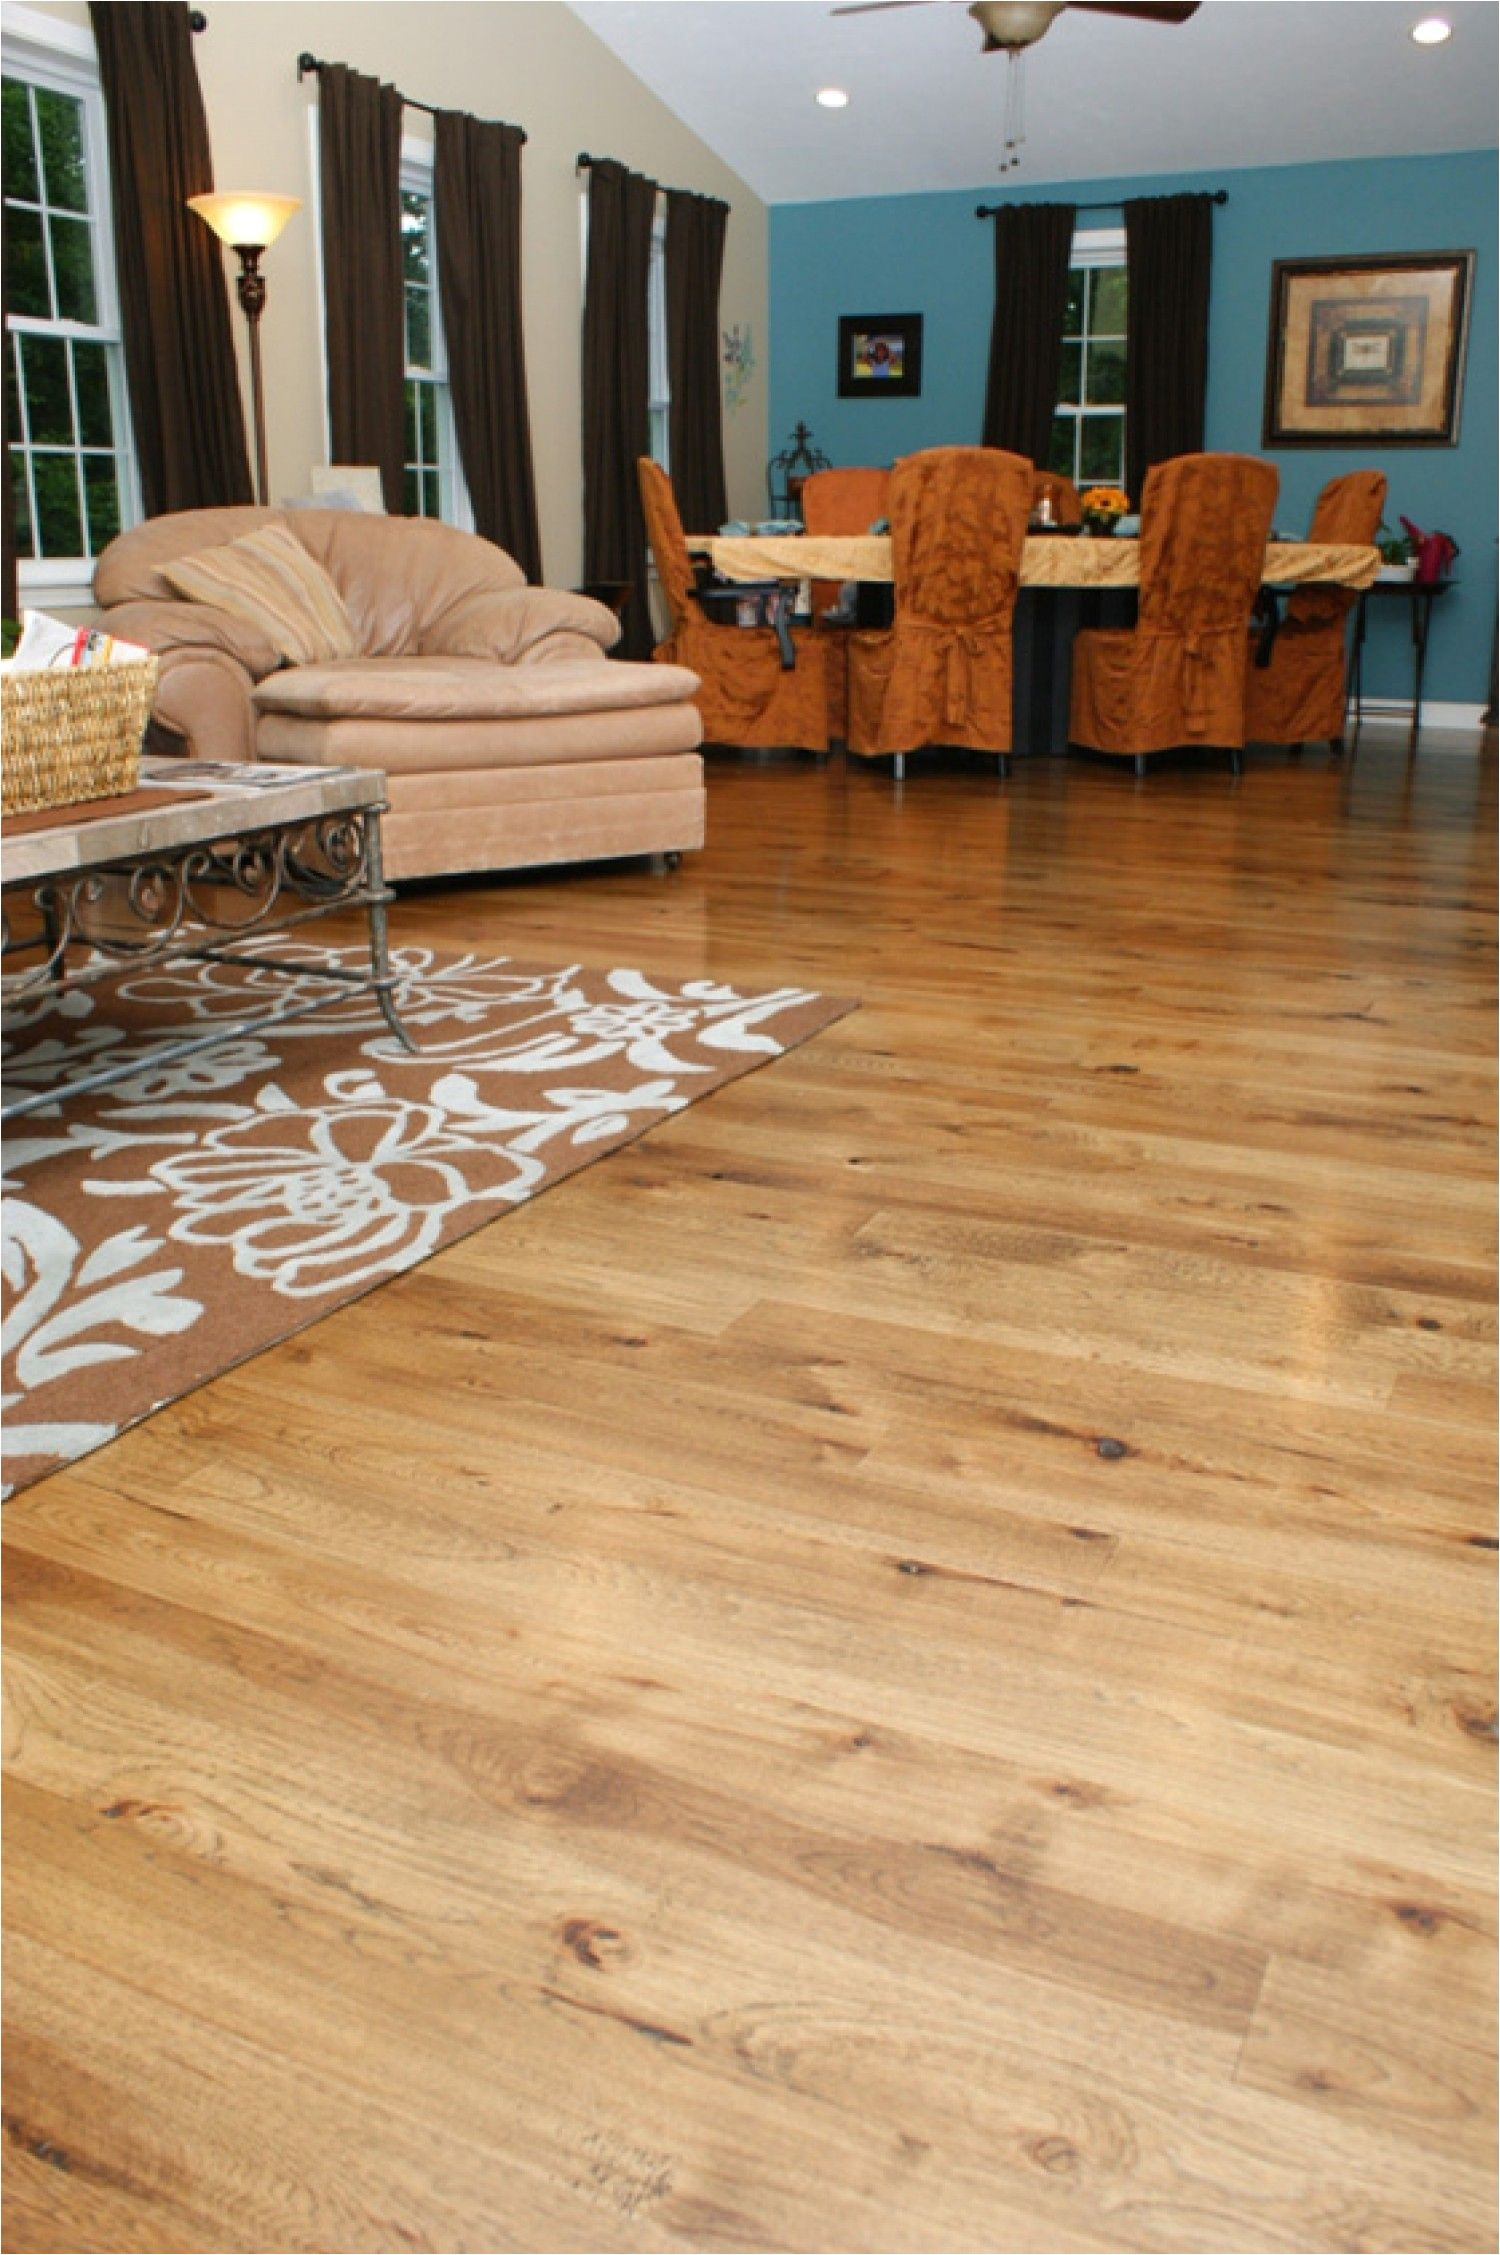 hardwood flooring prices of hardwood flooring nashville tn hickory wide plank flooring natural regarding hardwood flooring nashville tn hickory wide plank flooring natural grade hickory wide plank